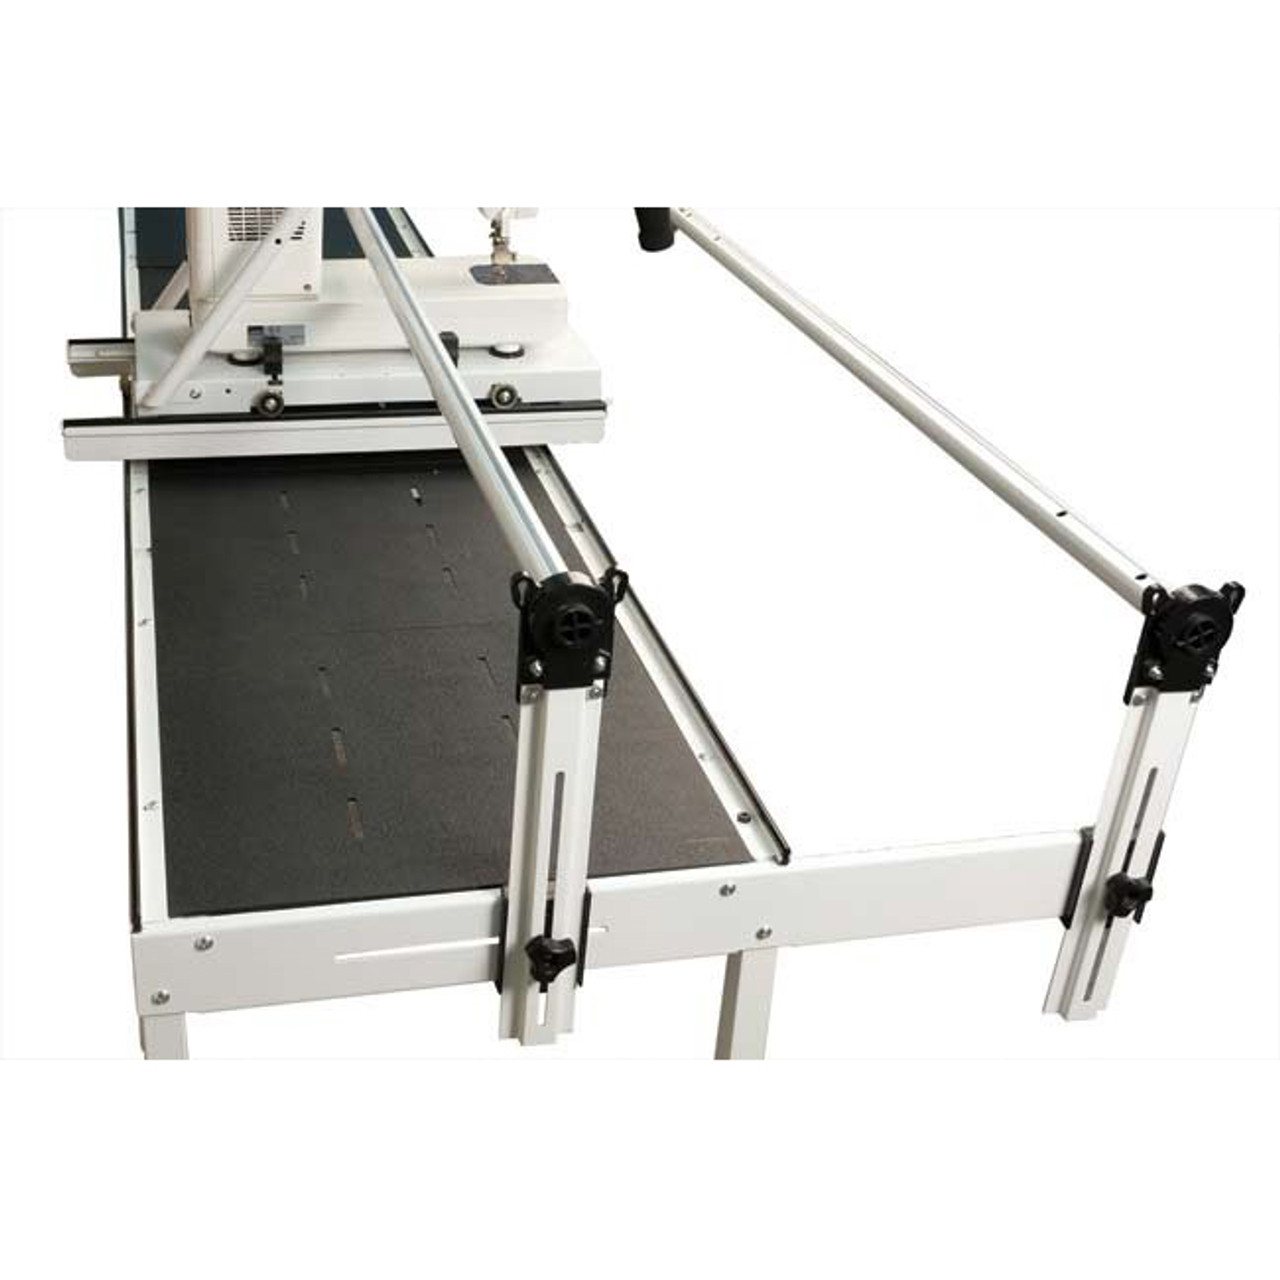 Grace Table Inserts for the SR2 Machine Frame $149.95 - FREE SHIPPING!